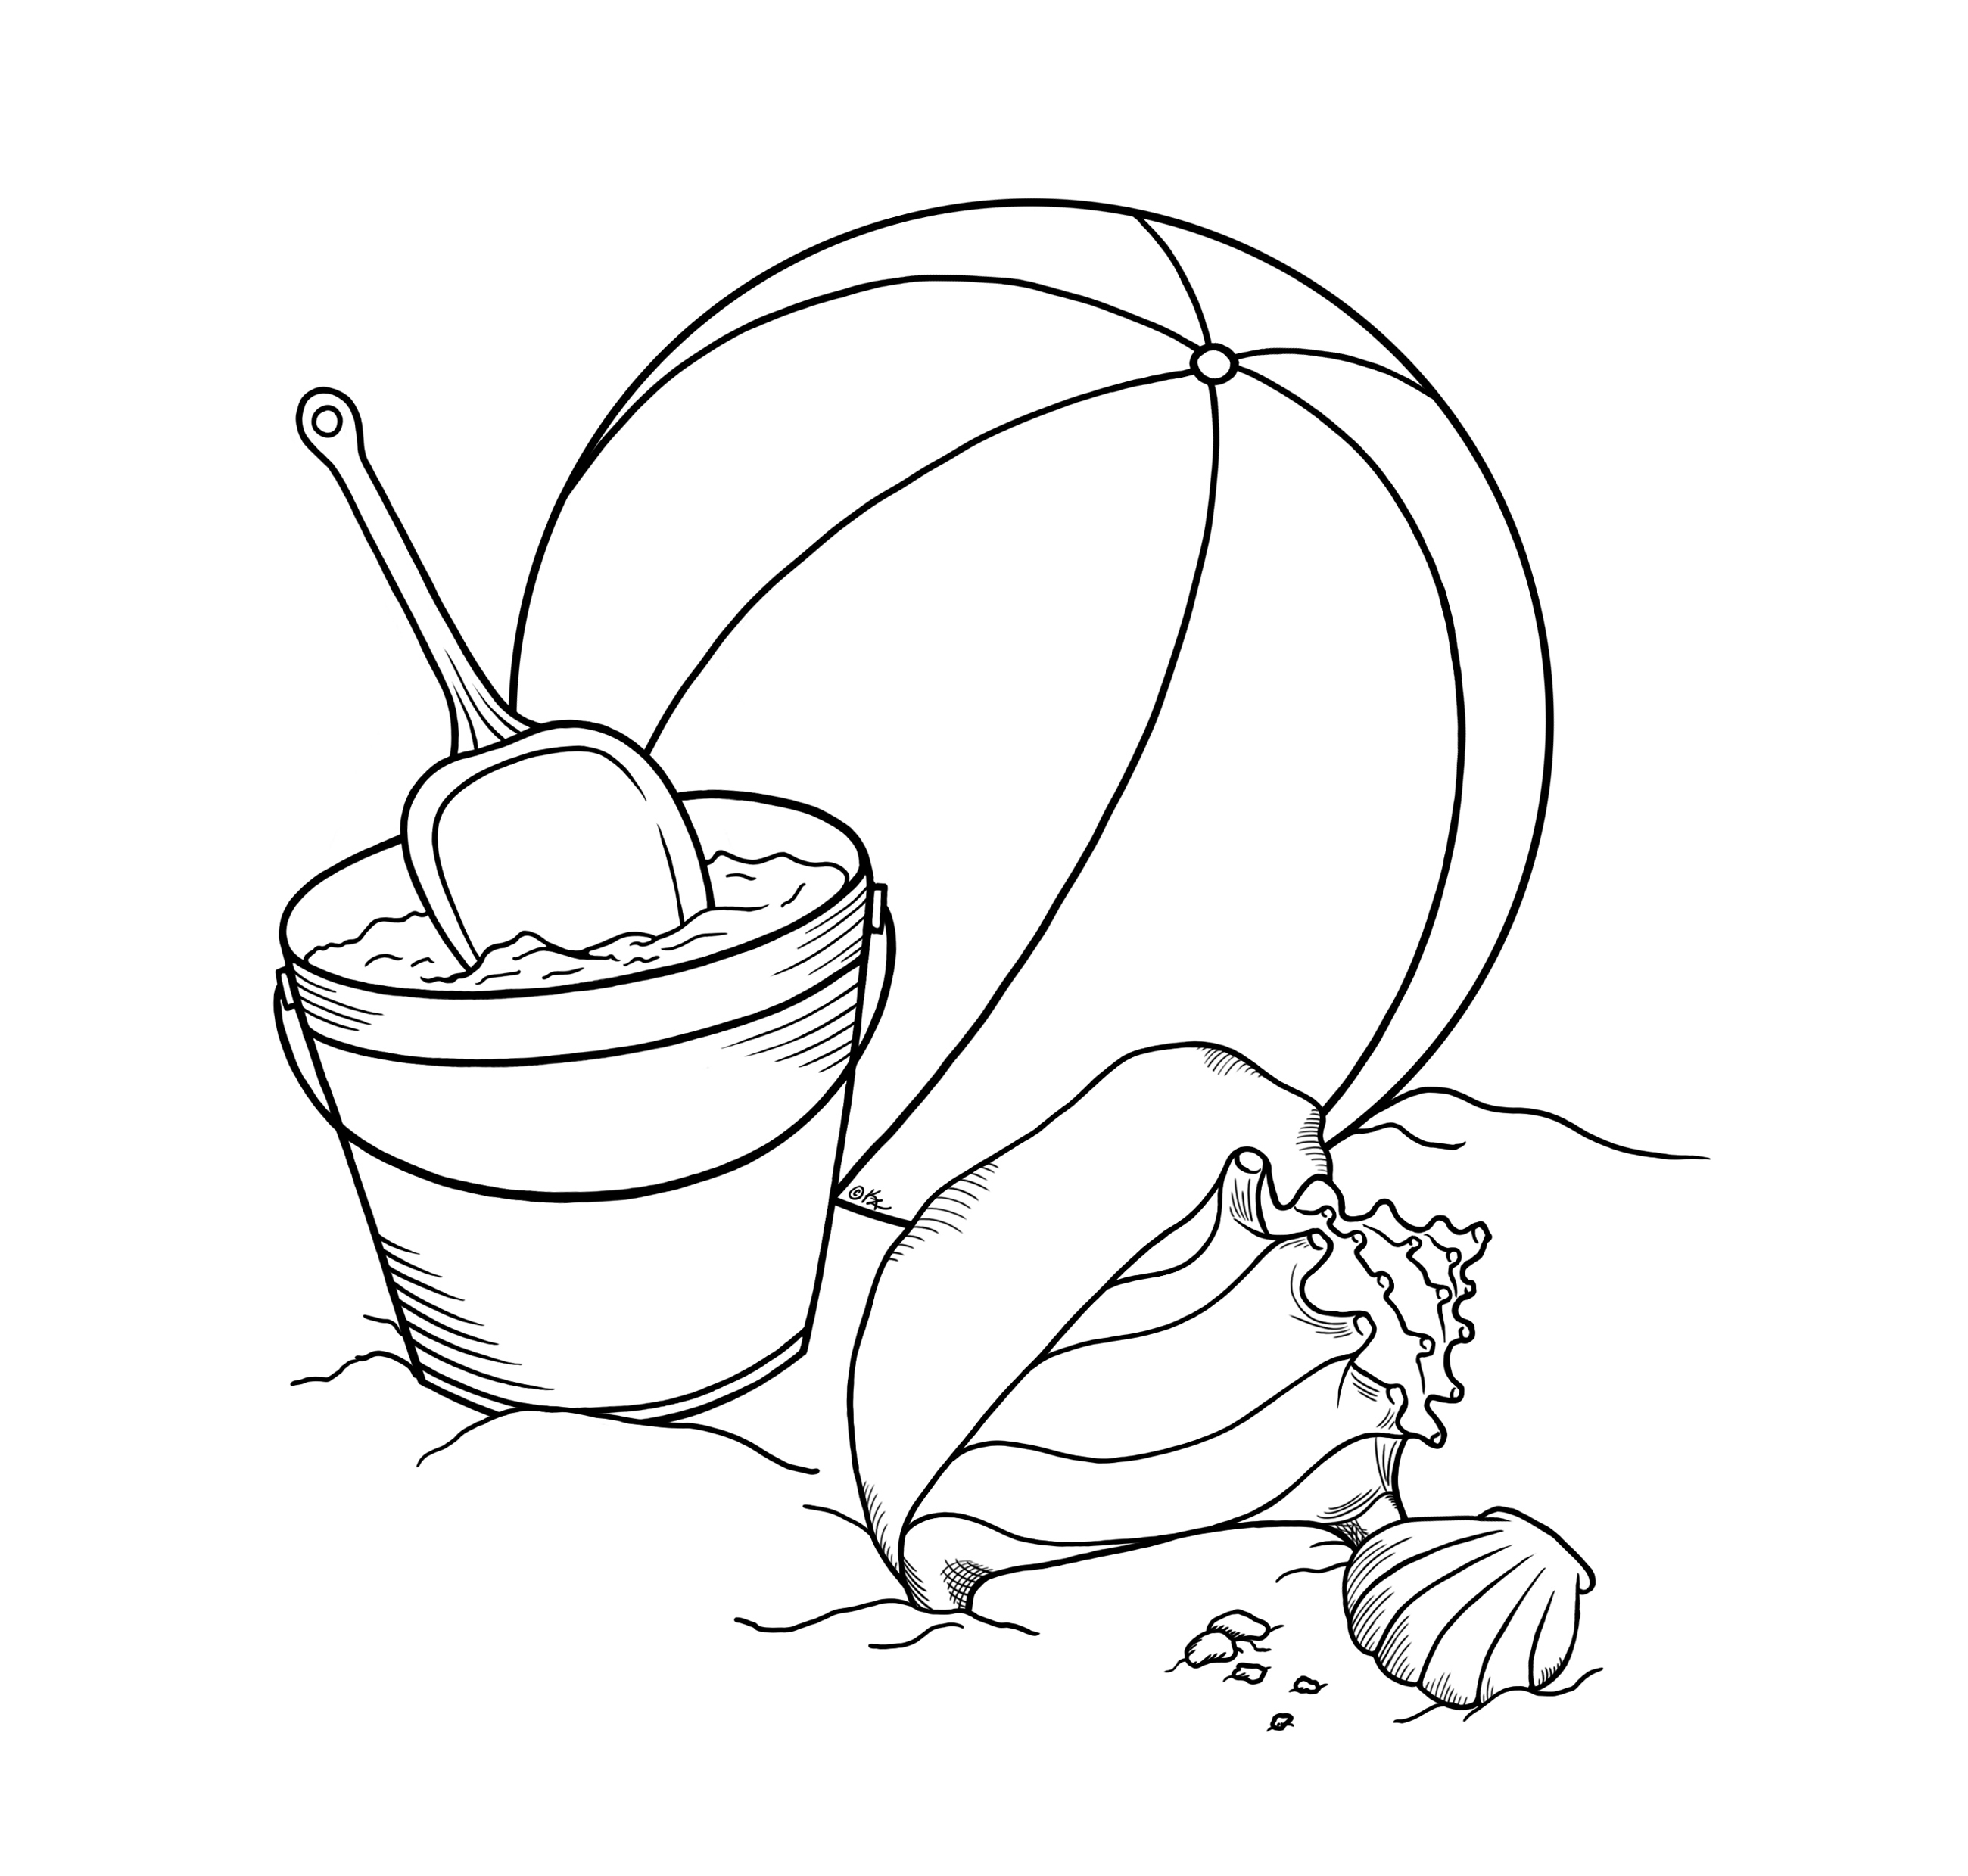 Sandcastle Drawing at GetDrawings.com | Free for personal use ...